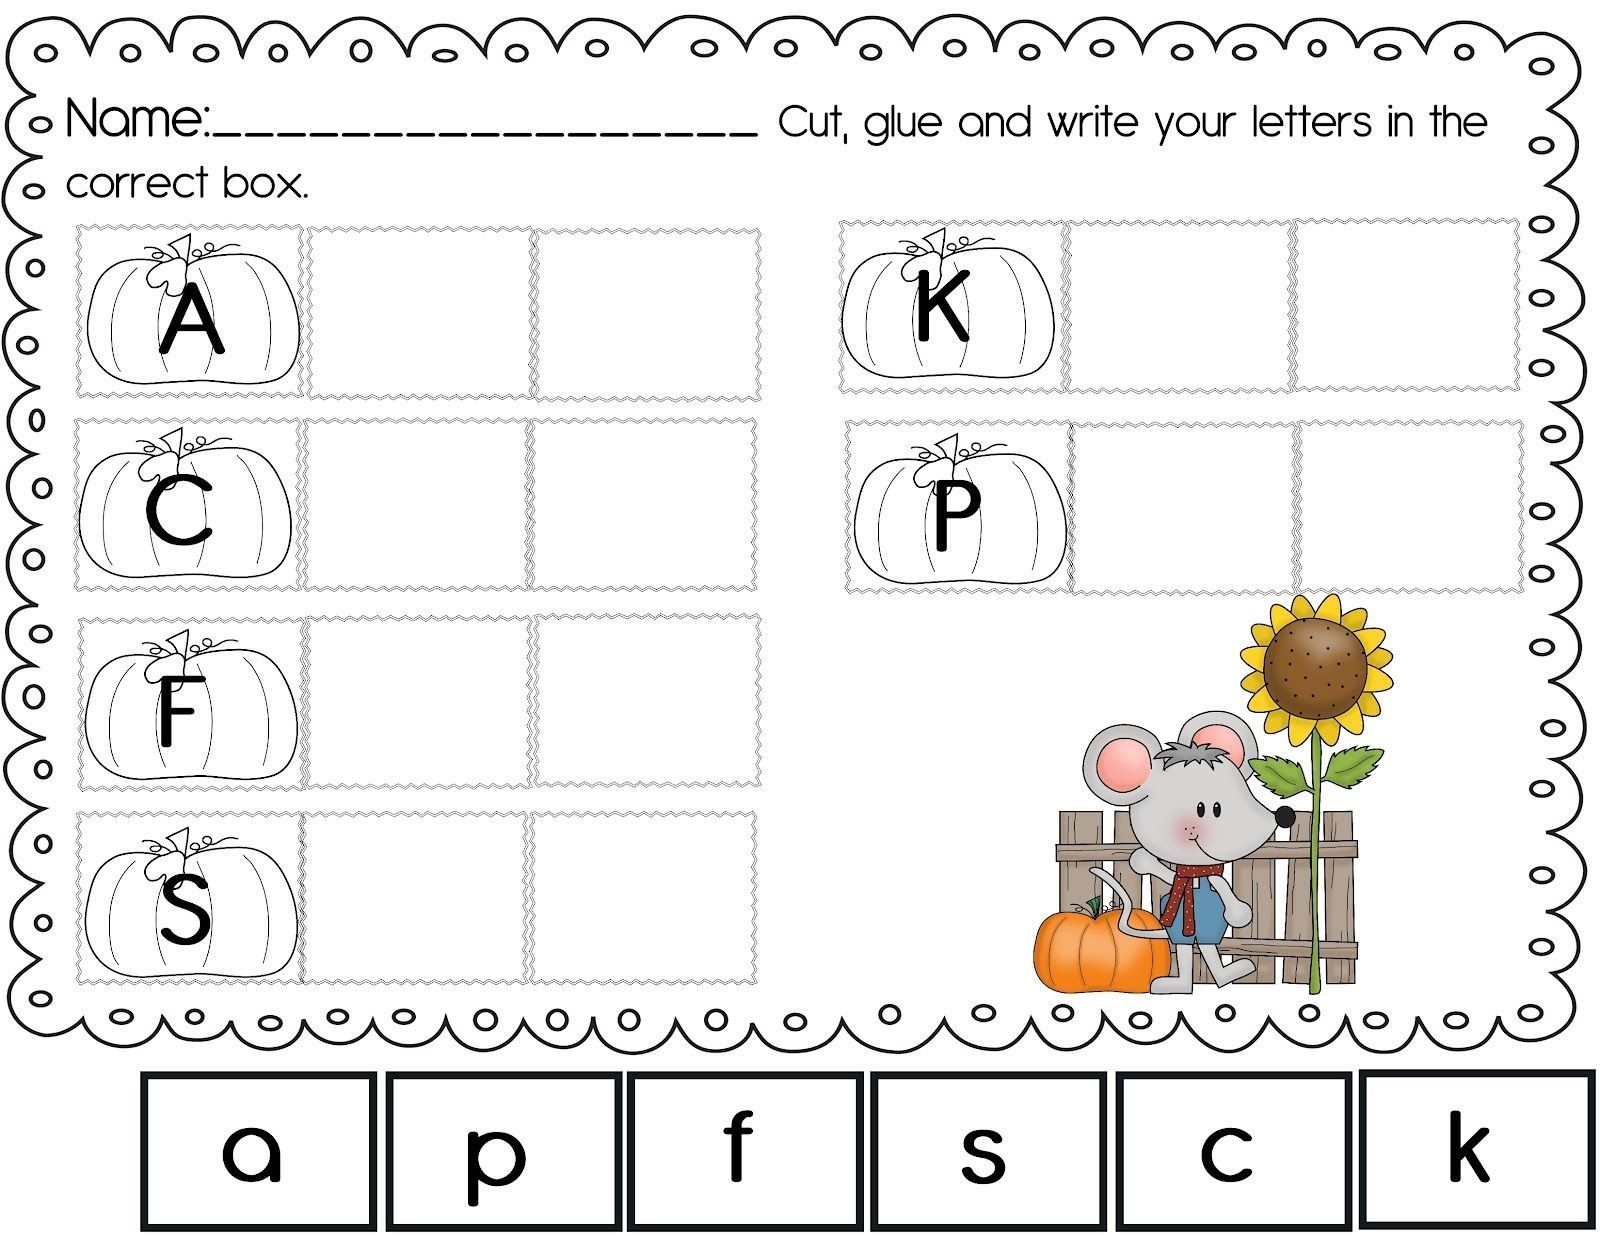 Free Abc Worksheets For Kids Abc Worksheets Worksheets For Kids Kindergarten Worksheets Abc worksheets for preschool